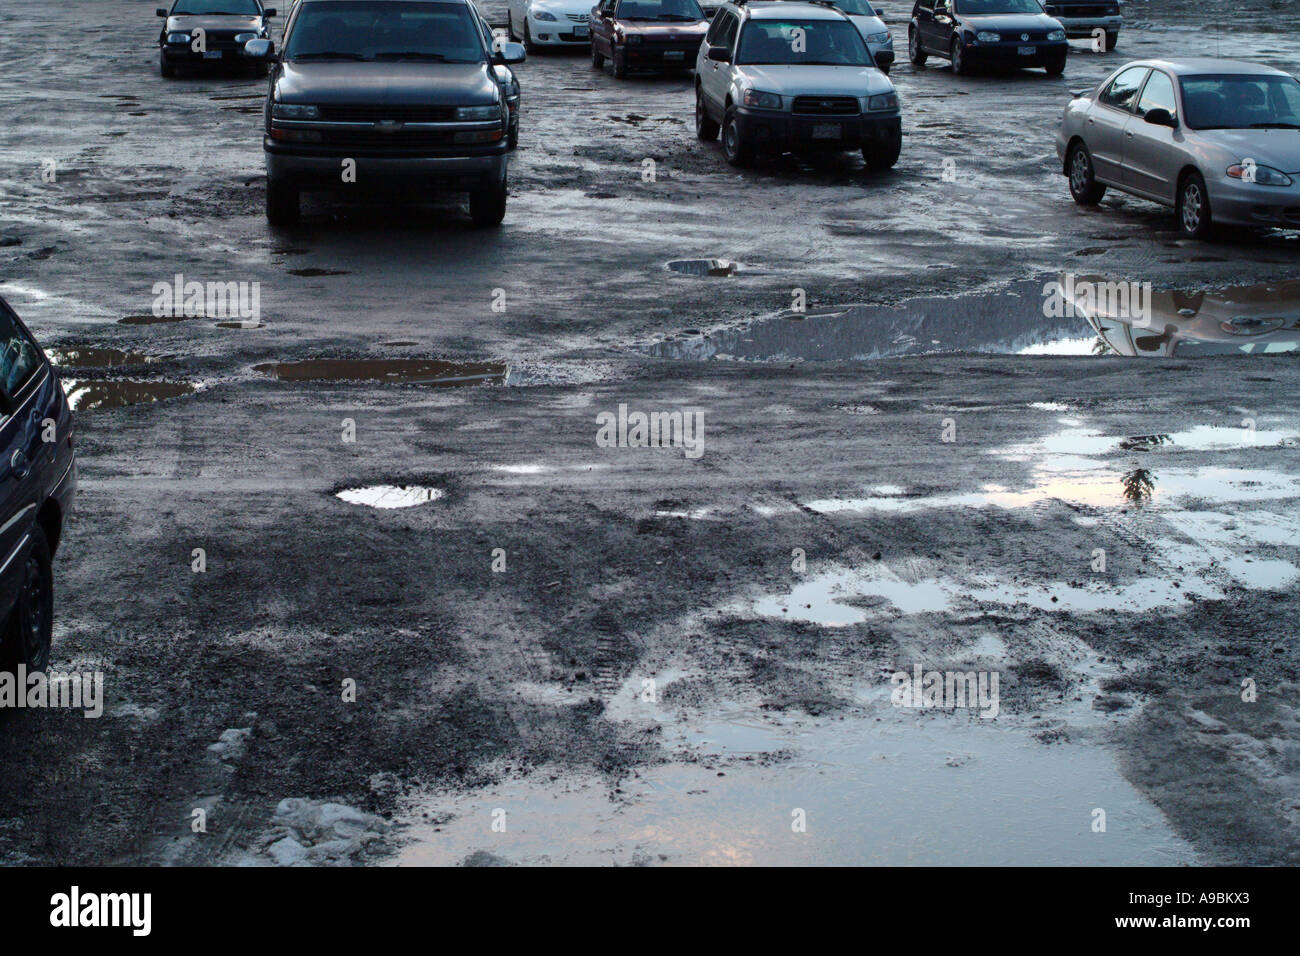 Muddy parking lot with puddles - Stock Image